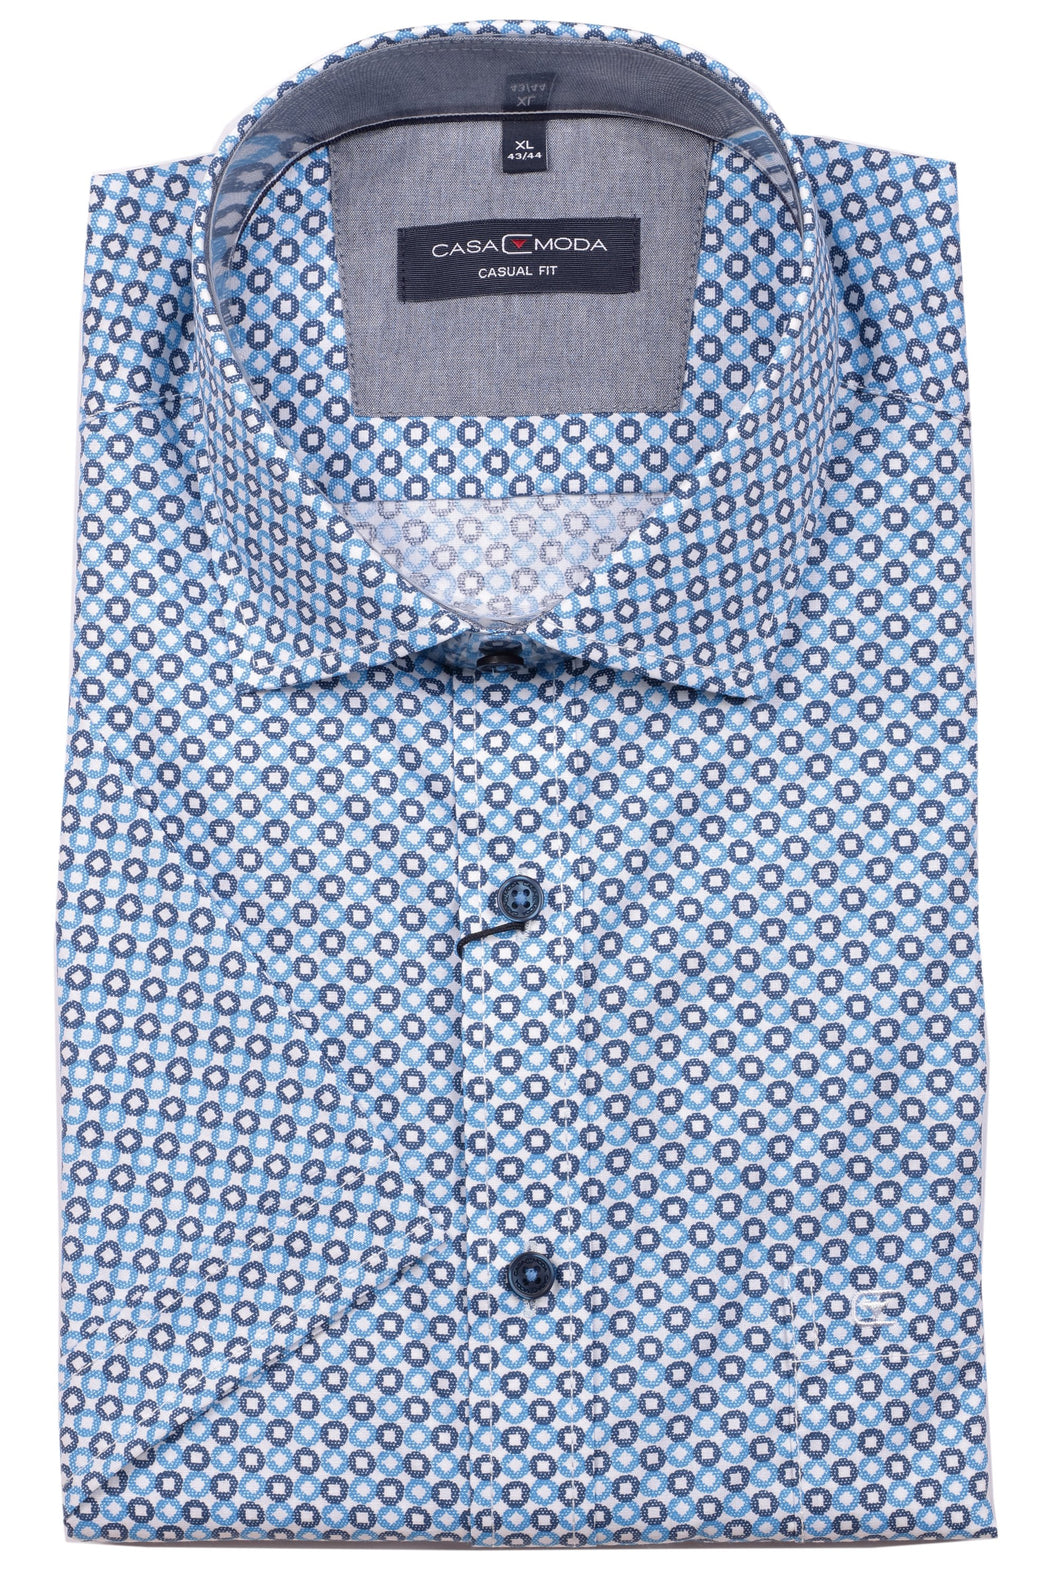 Casa Moda -  Blue/Navy Print, Short Sleeve Shirt